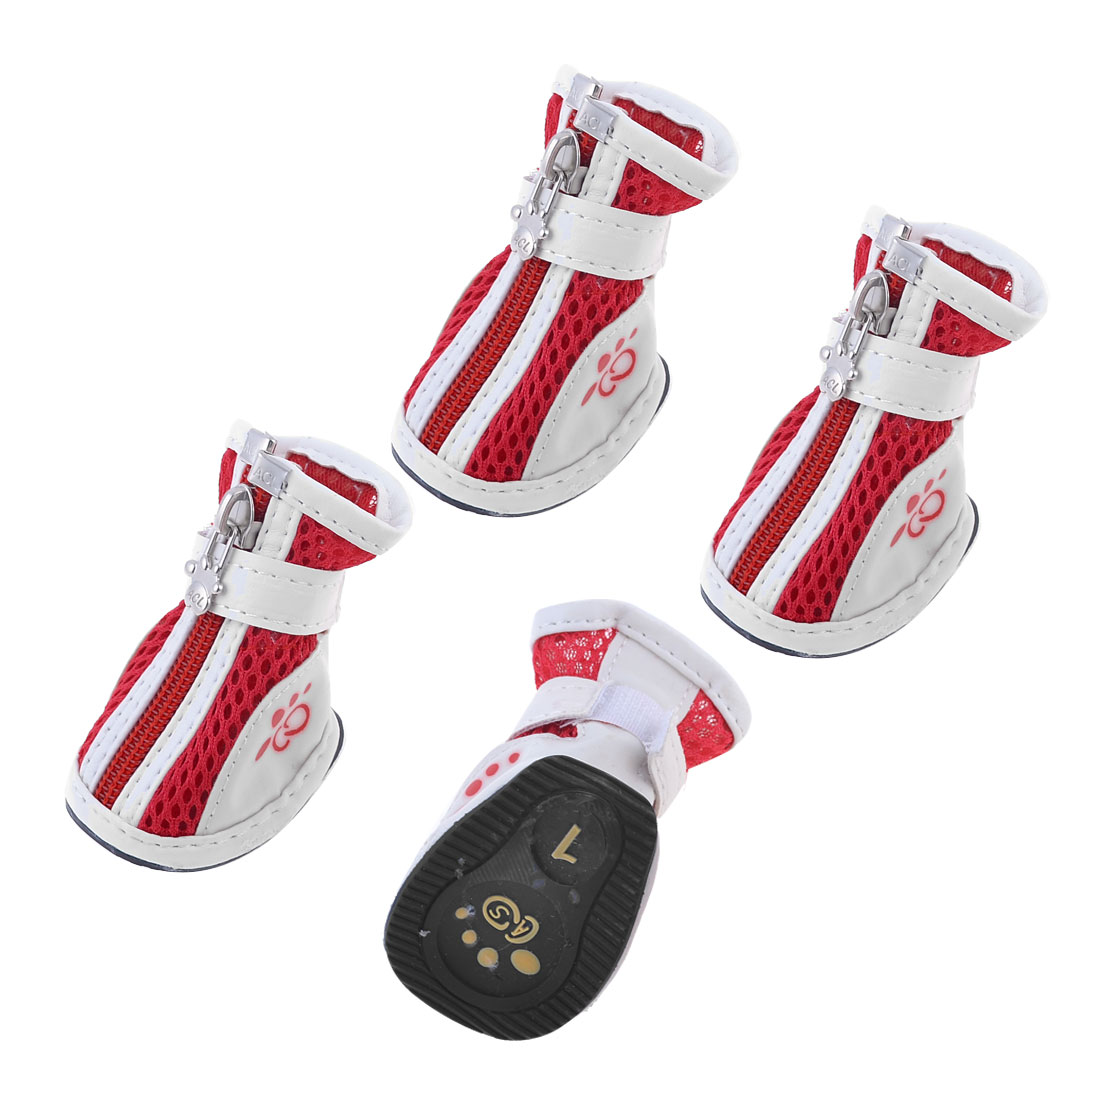 Pet Doggy Yorkie Chihuaha Zipper Closure White Red Meshy Shoes Two Pair XXS